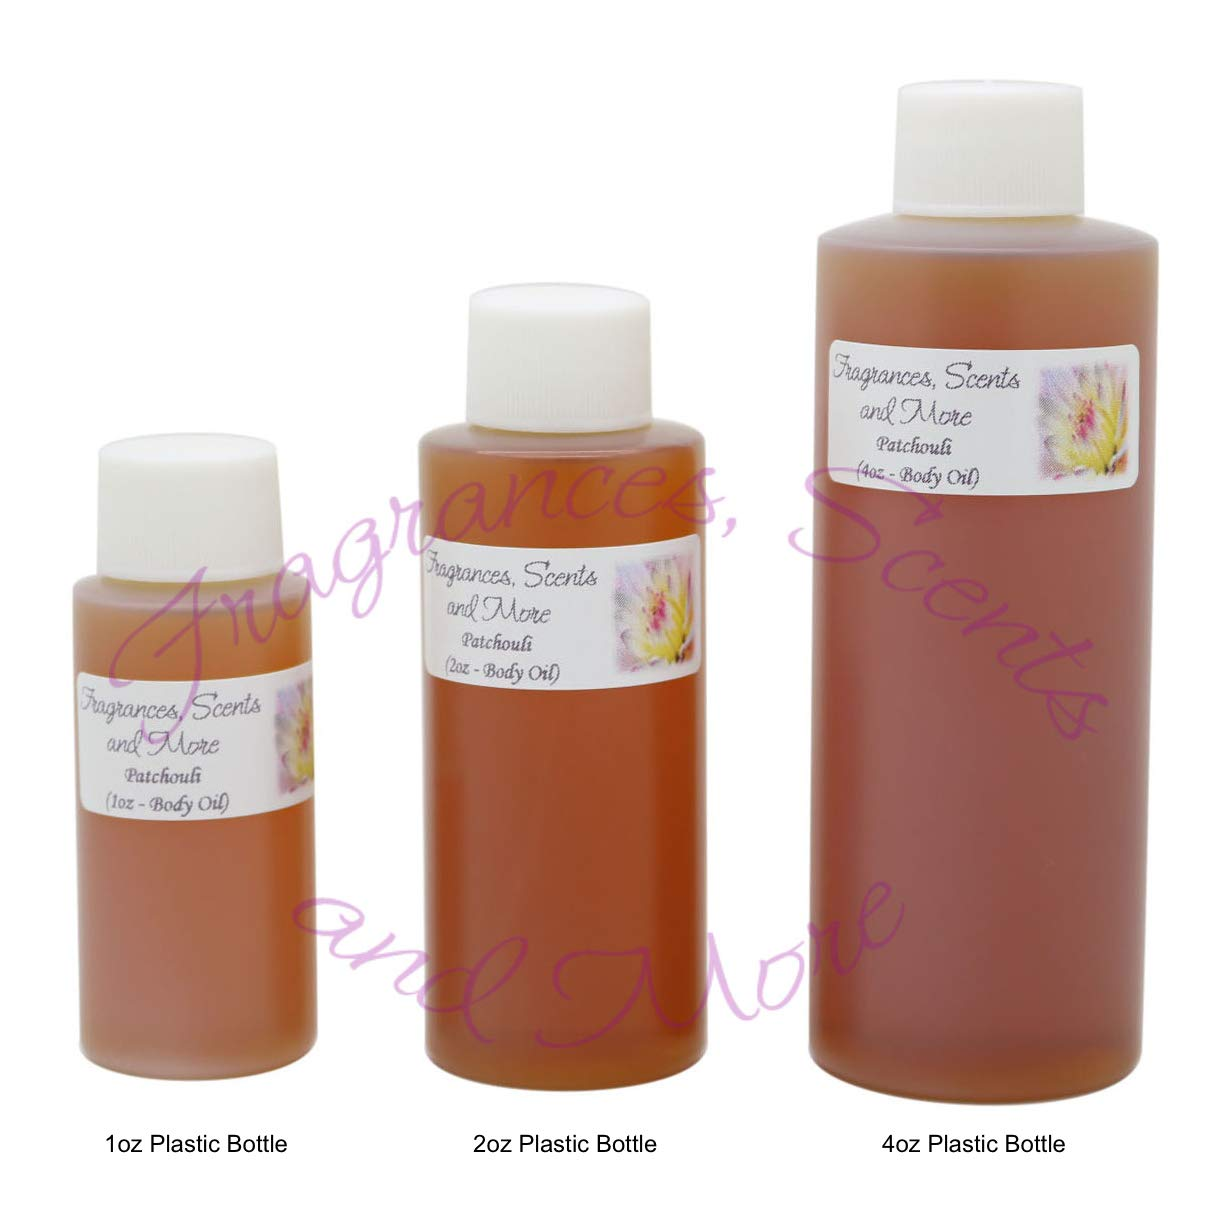 Patchouli Perfume/Body Oil (7 Sizes) - Free Shipping (1 Bottle 1/6oz Roll On (5ml))